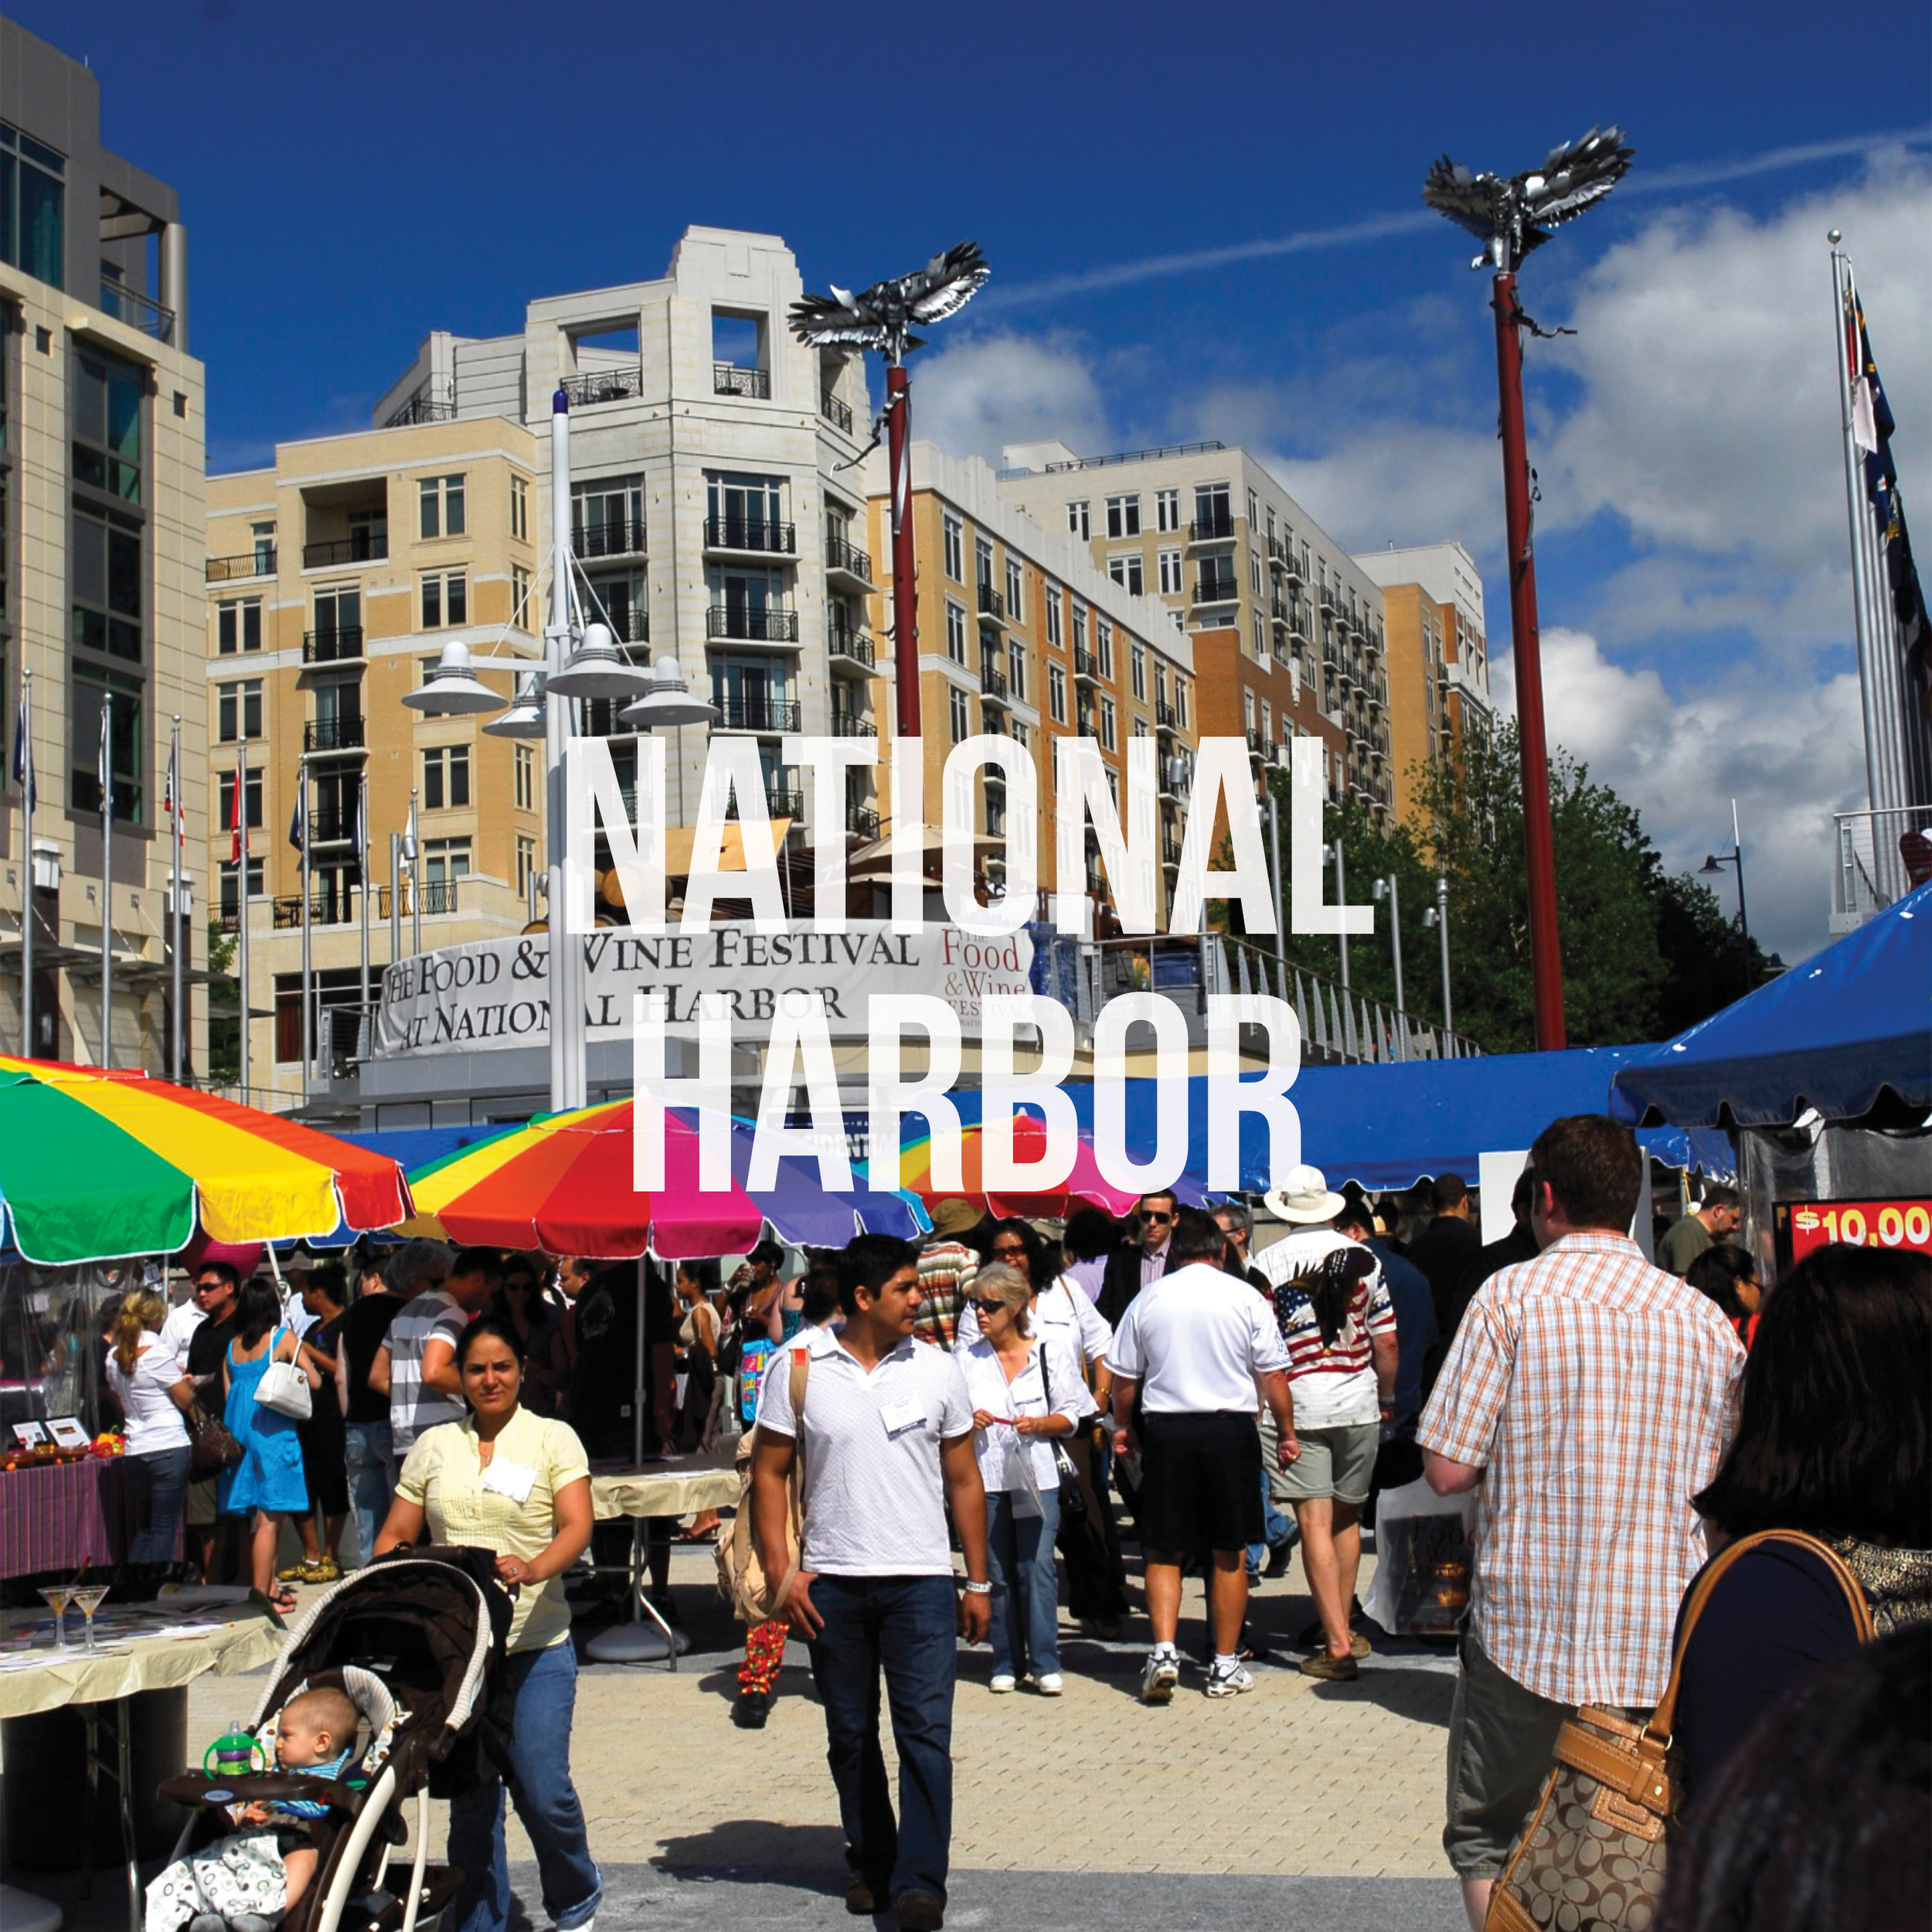 2019 updates-MIXED USE title pages-nationalharbor.jpg